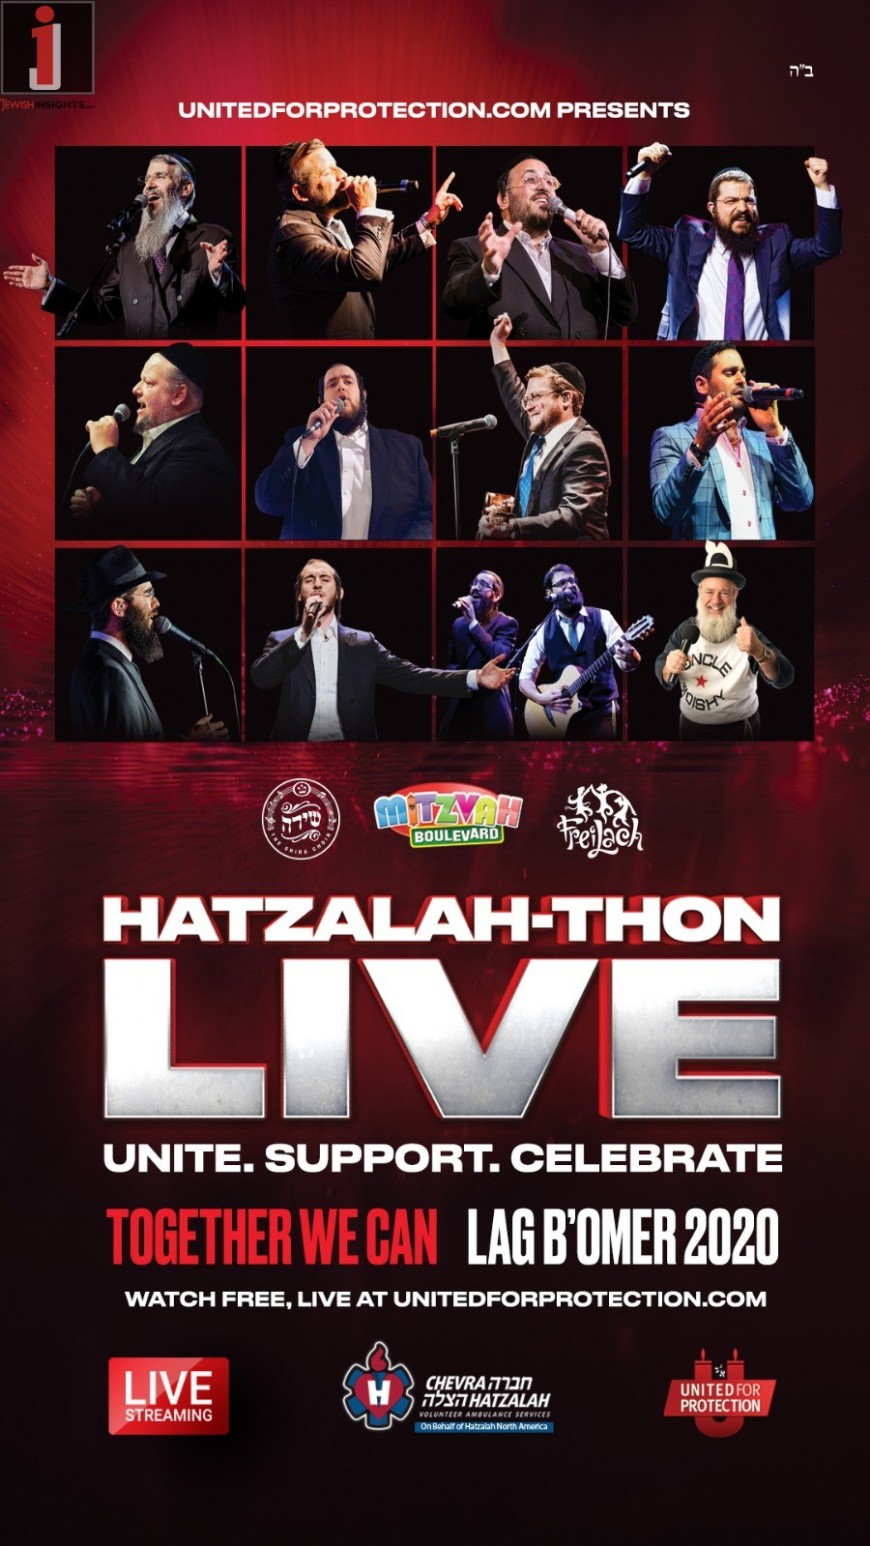 24 Hours of Thank You -Hatzalah-Thon: A Day of Joy, Appreciation, and Giving